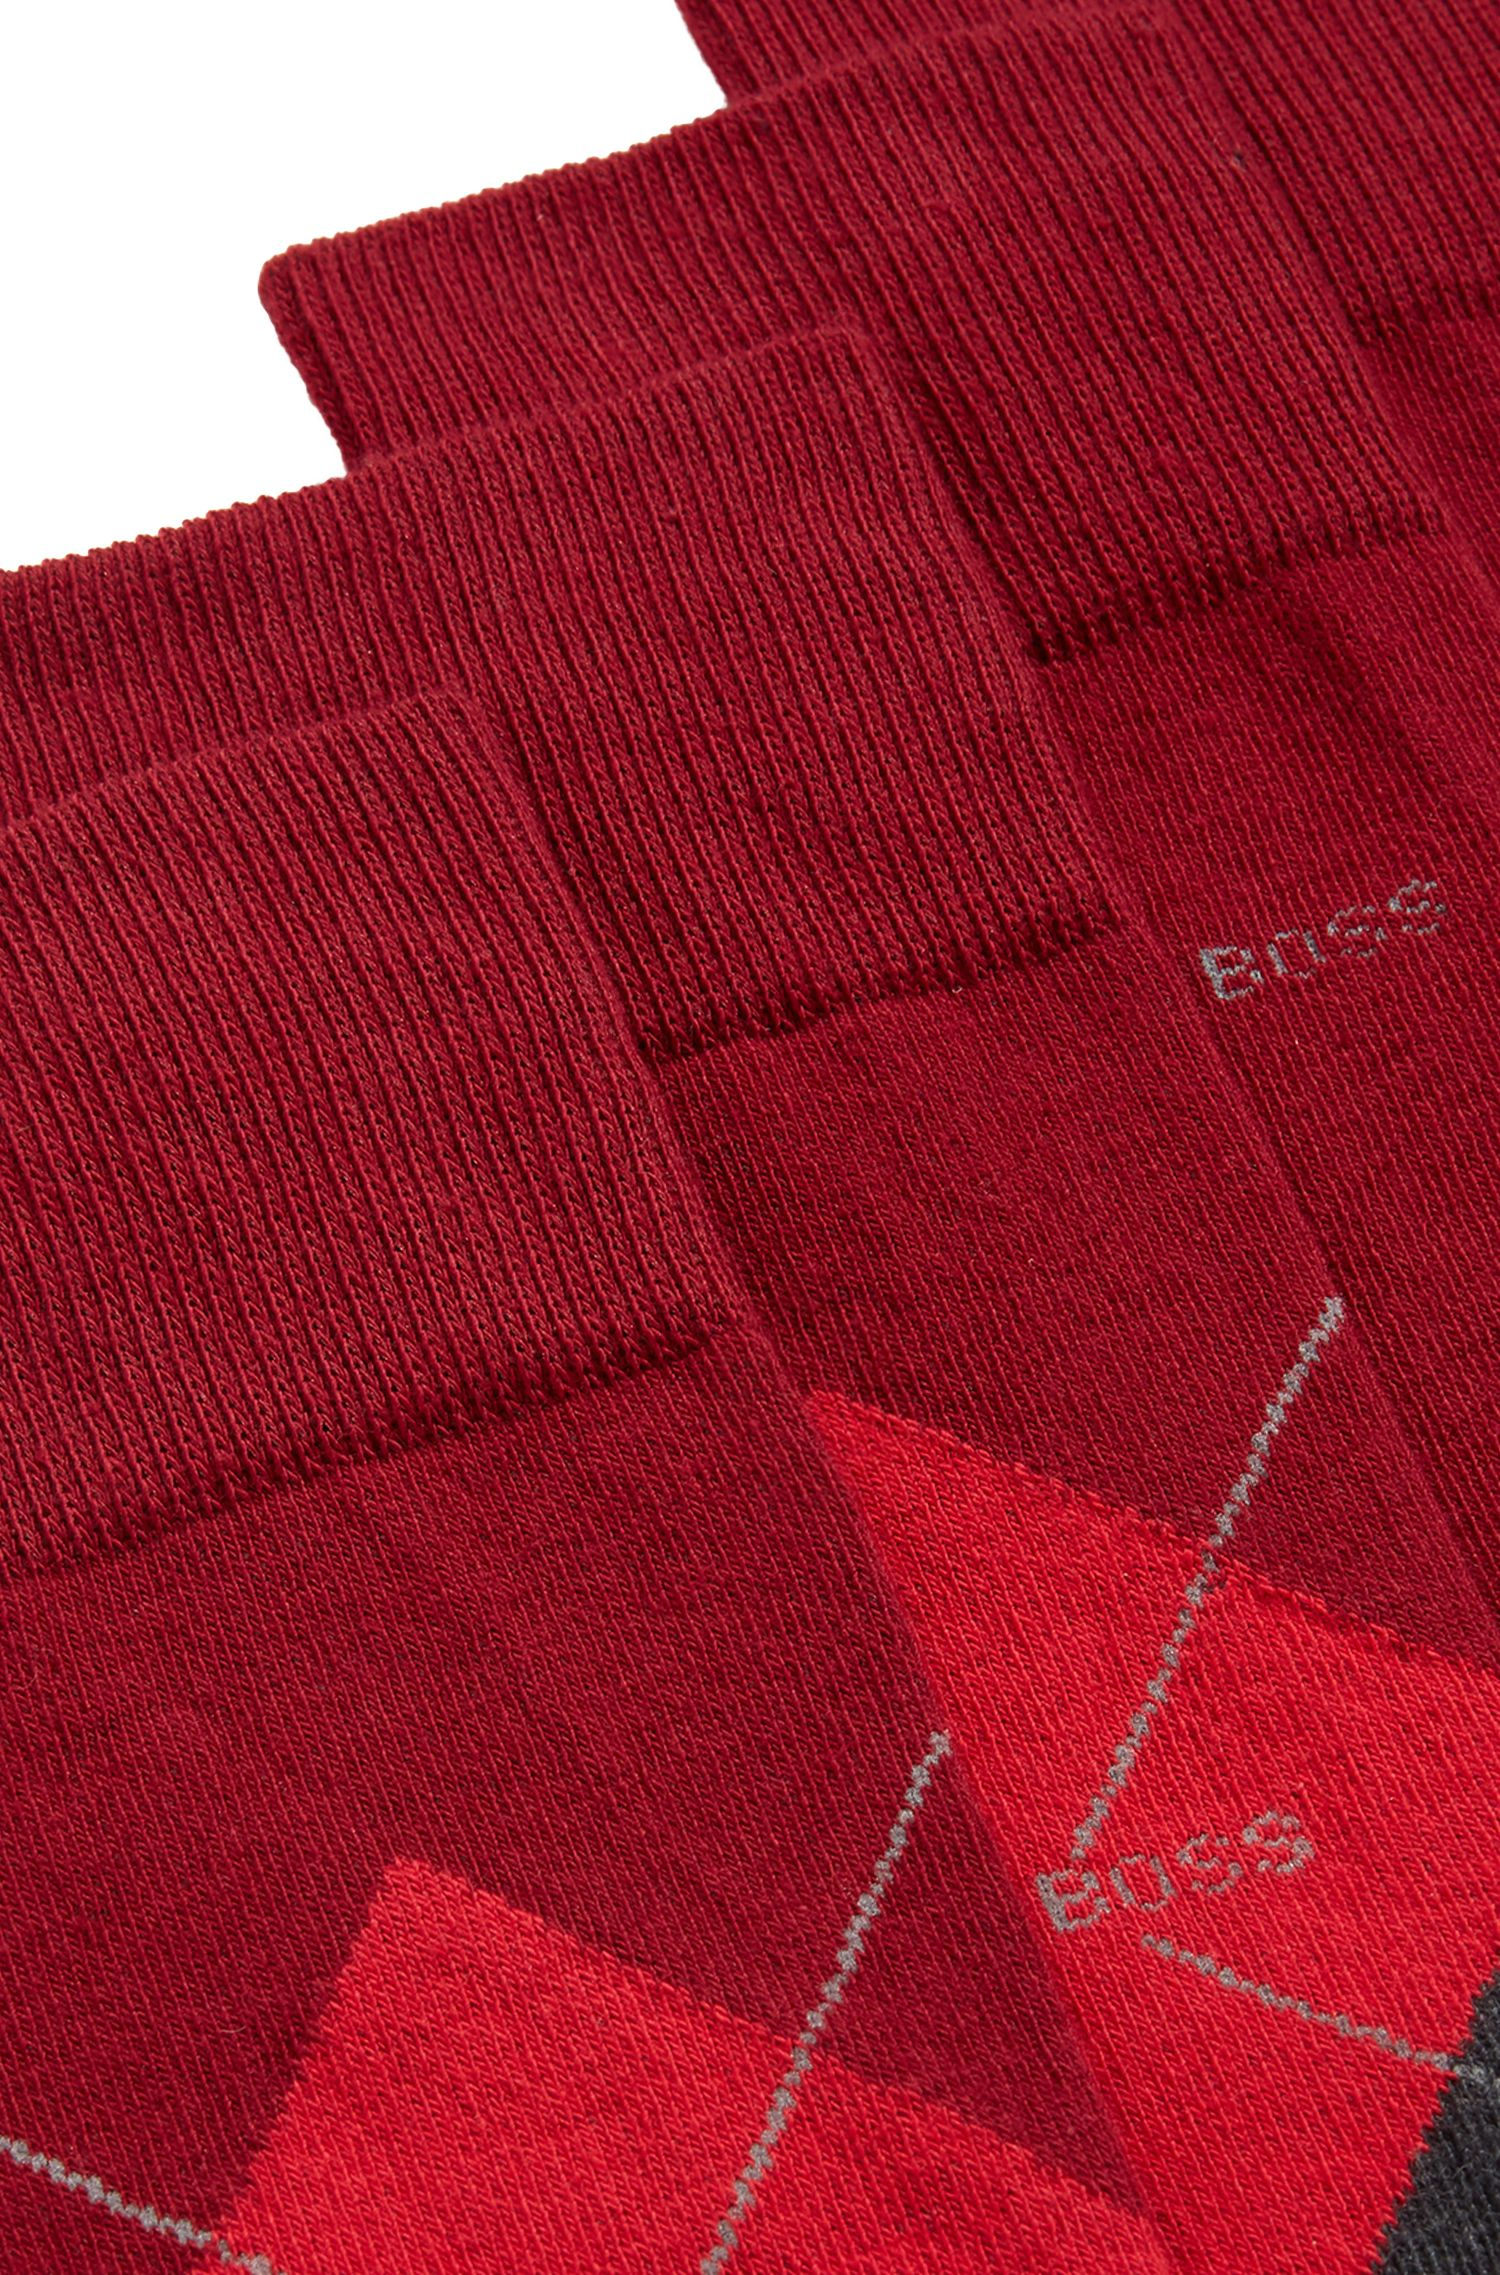 Two-pack of plain and patterned regular-length socks in a combed-cotton blend